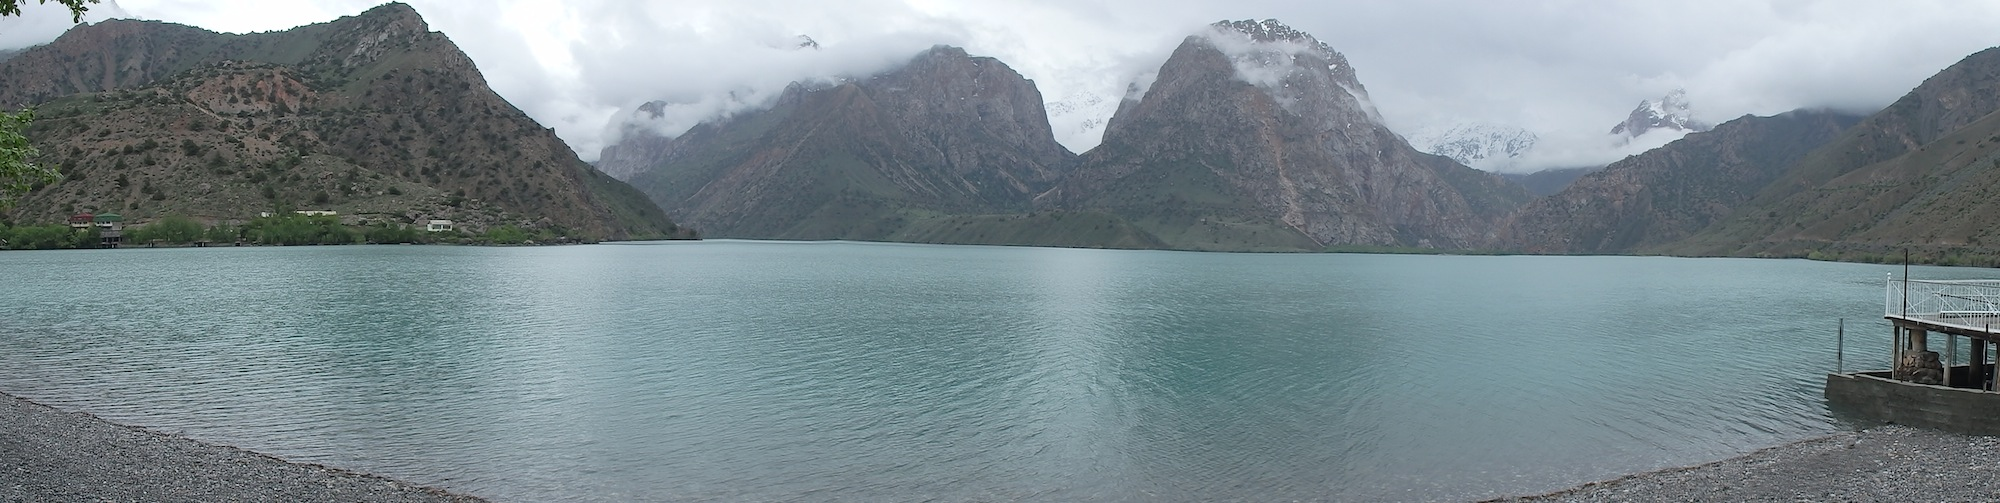 Iskander Kul (Lake)